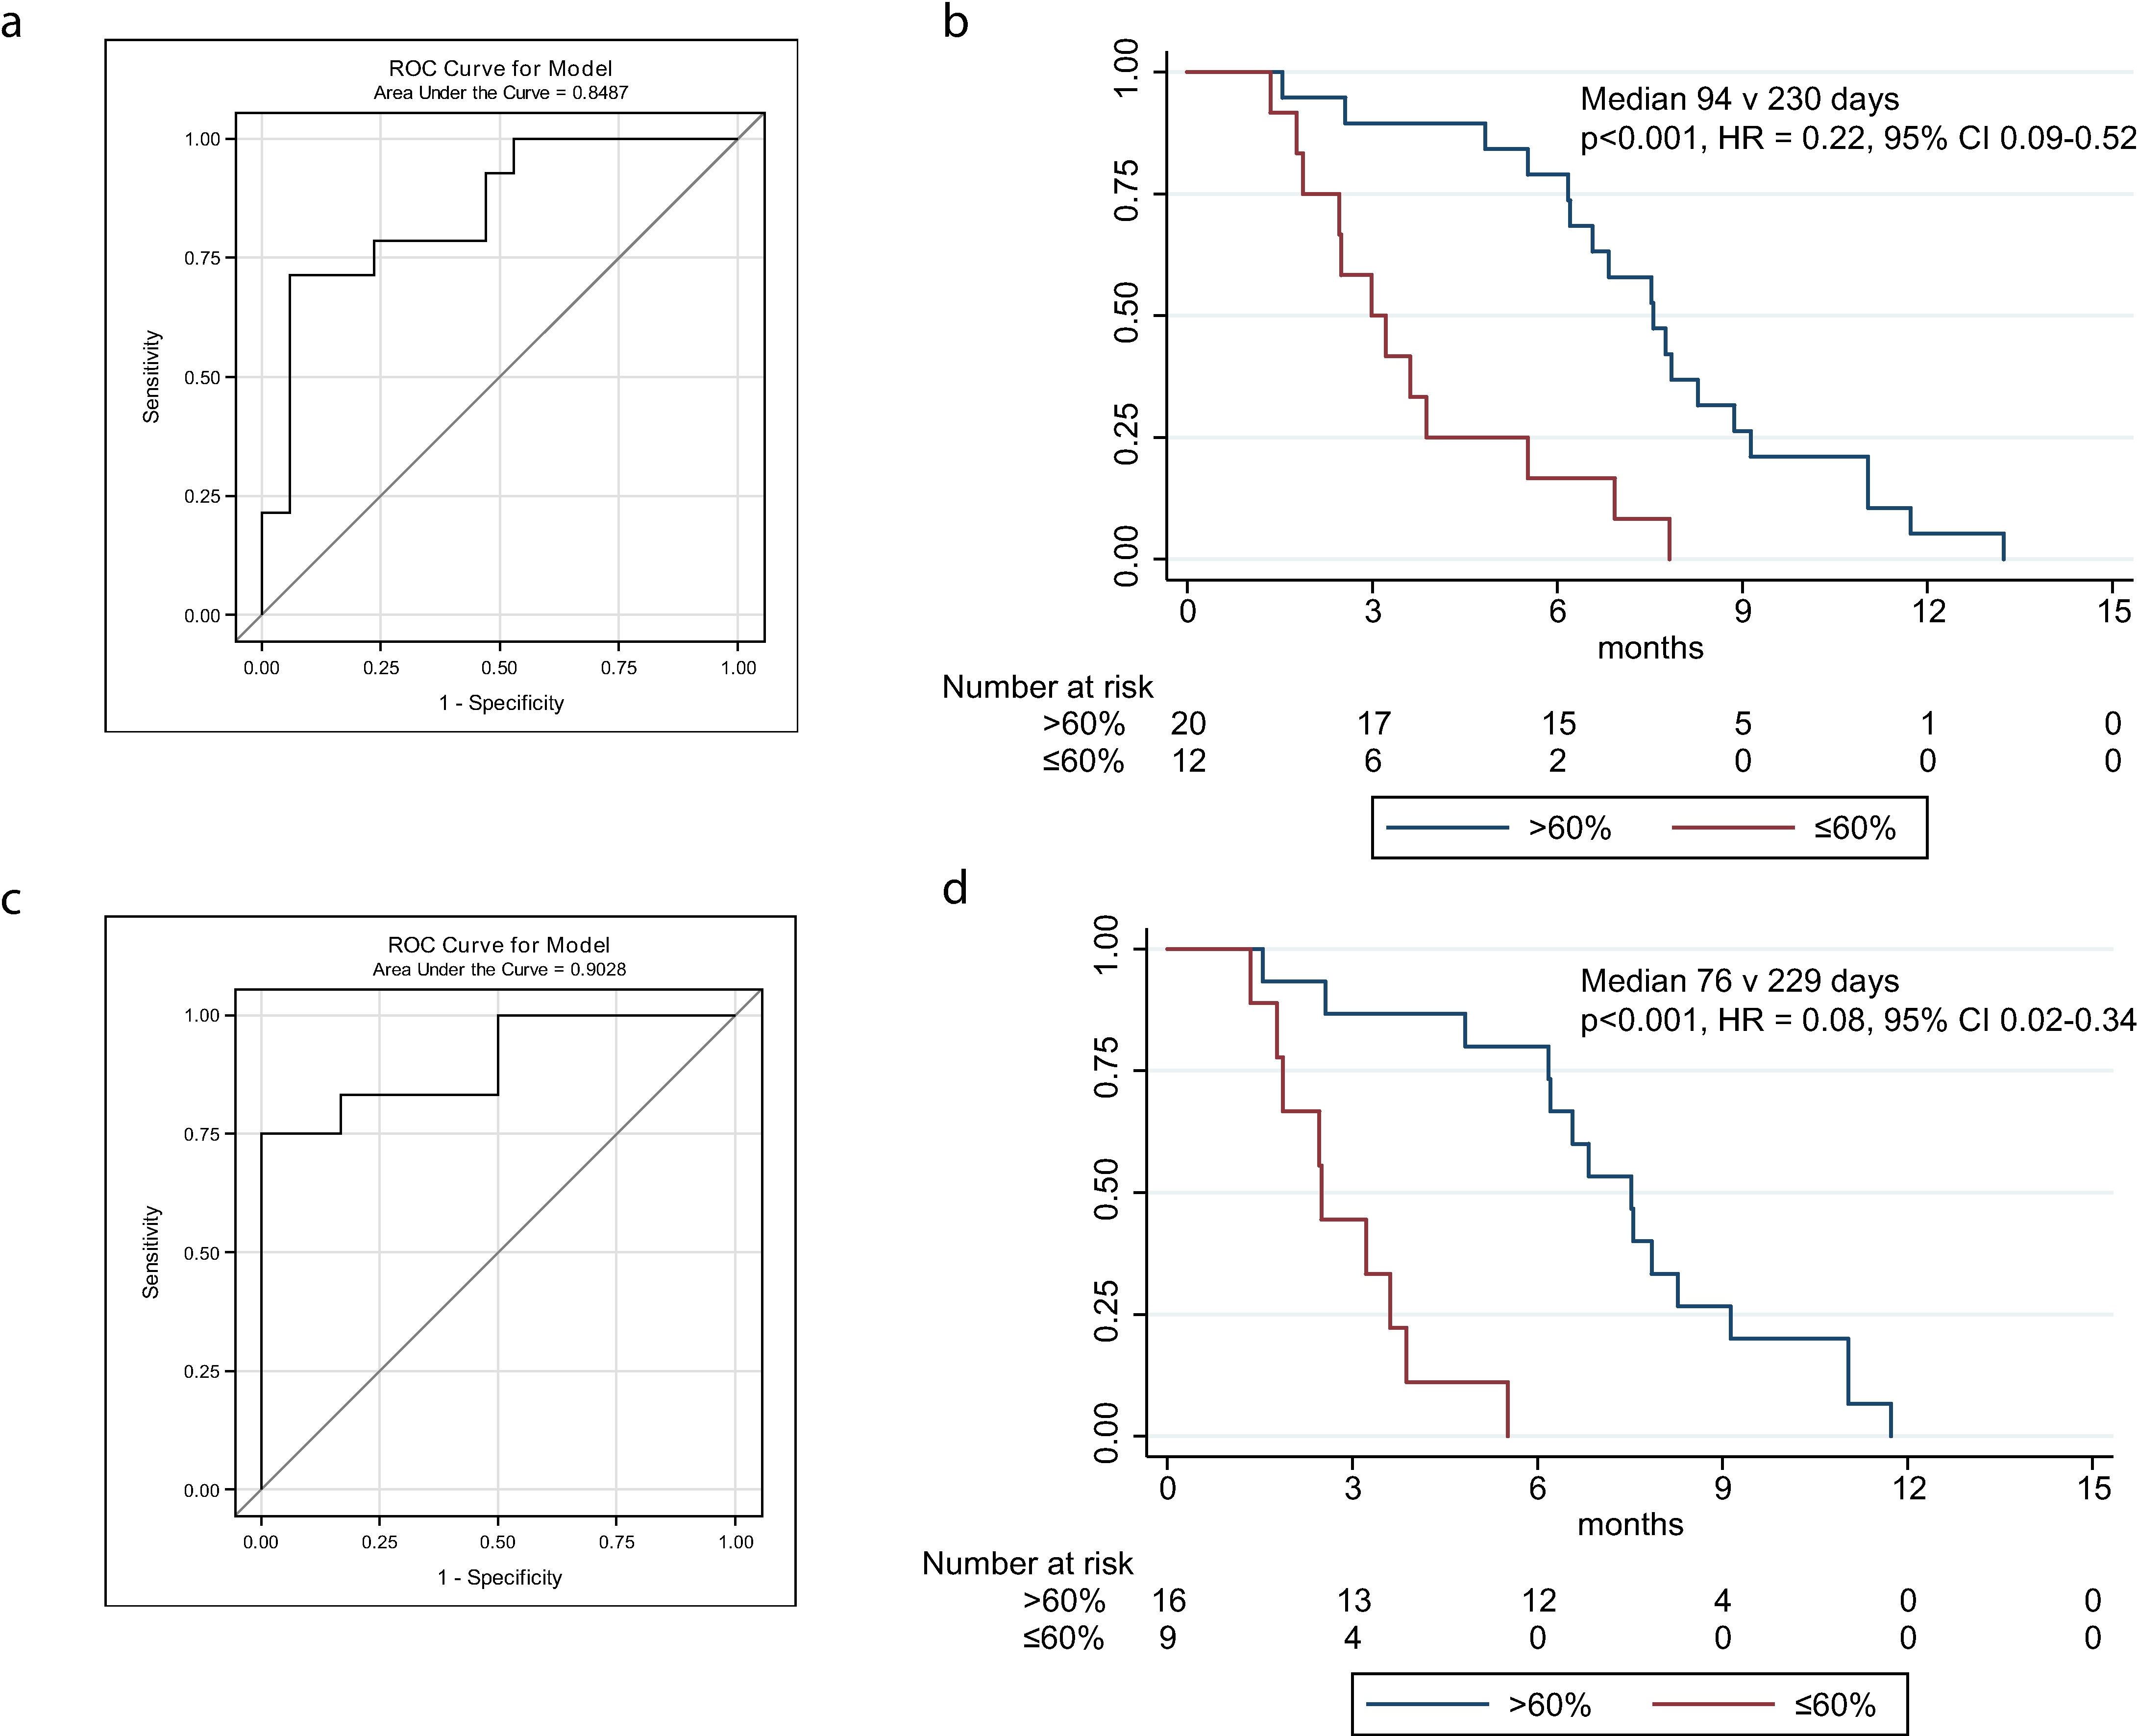 ROC curves and Kaplan-Meier plots for change in circulating tumour DNA after one cycle of chemotherapy, including and excluding courses with recent ascitic drains.